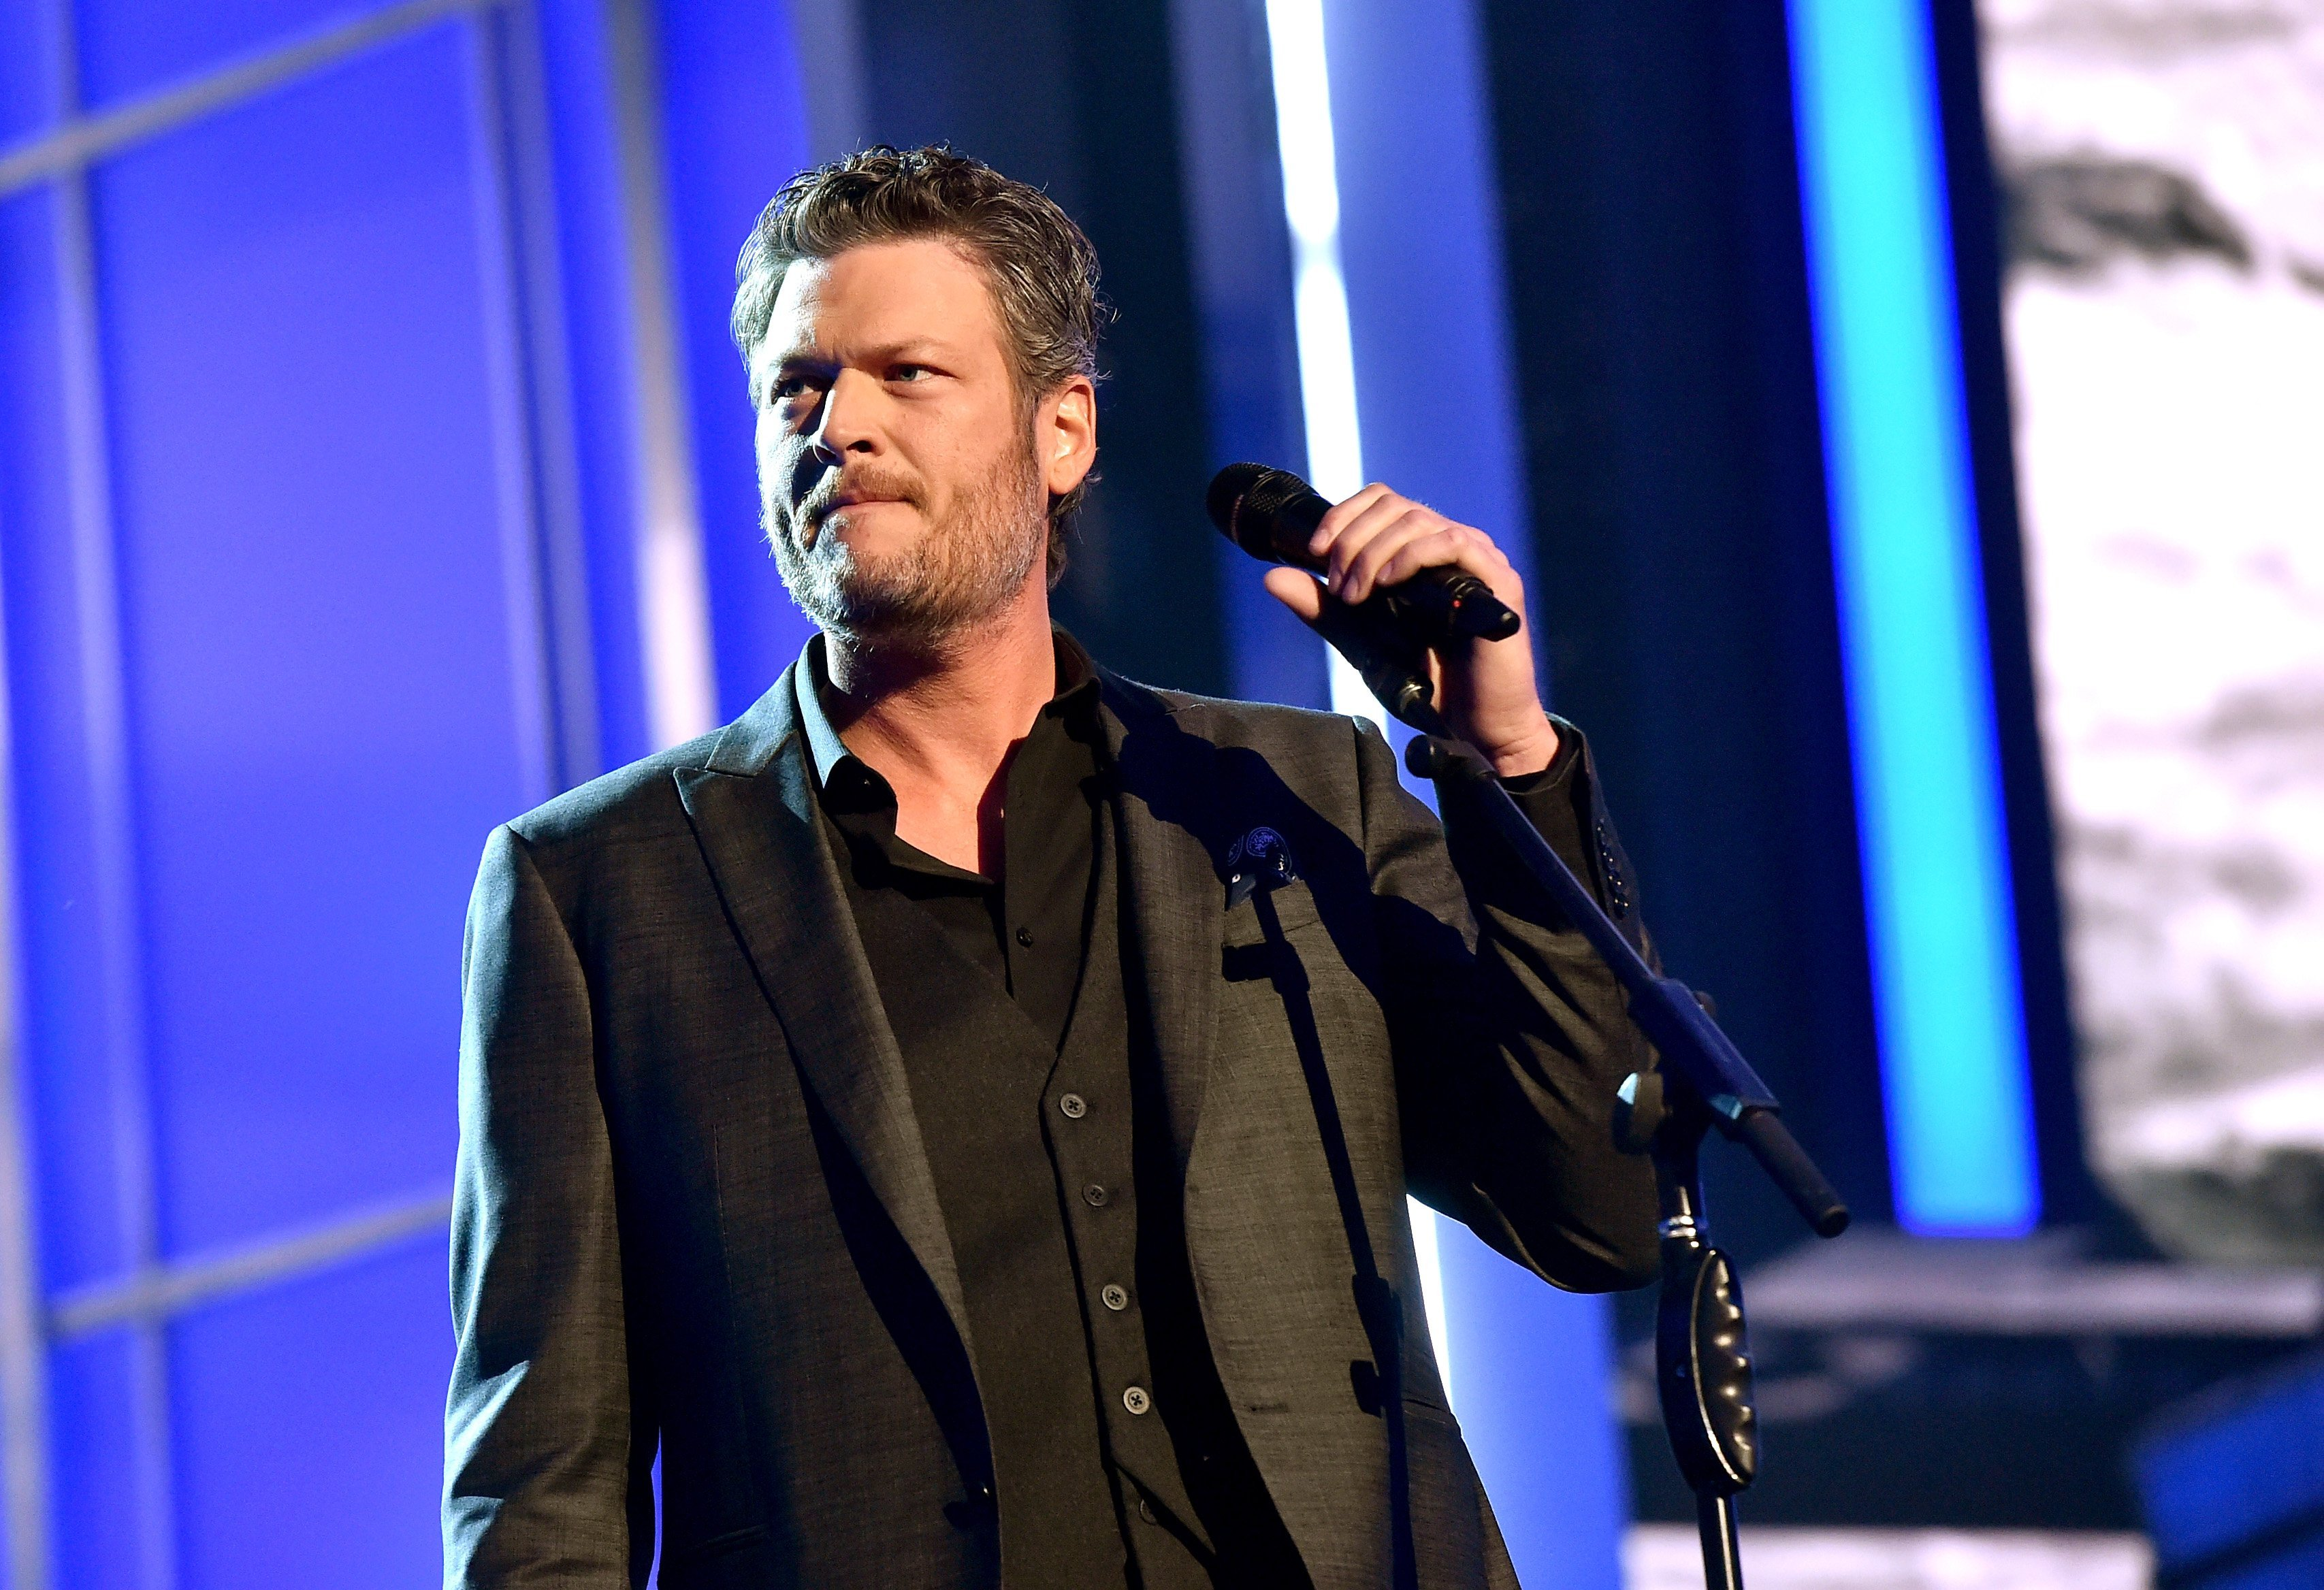 Blake Shelton on April 3, 2016 in Las Vegas, Nevada | Source: Getty Images/Global Images Ukraine